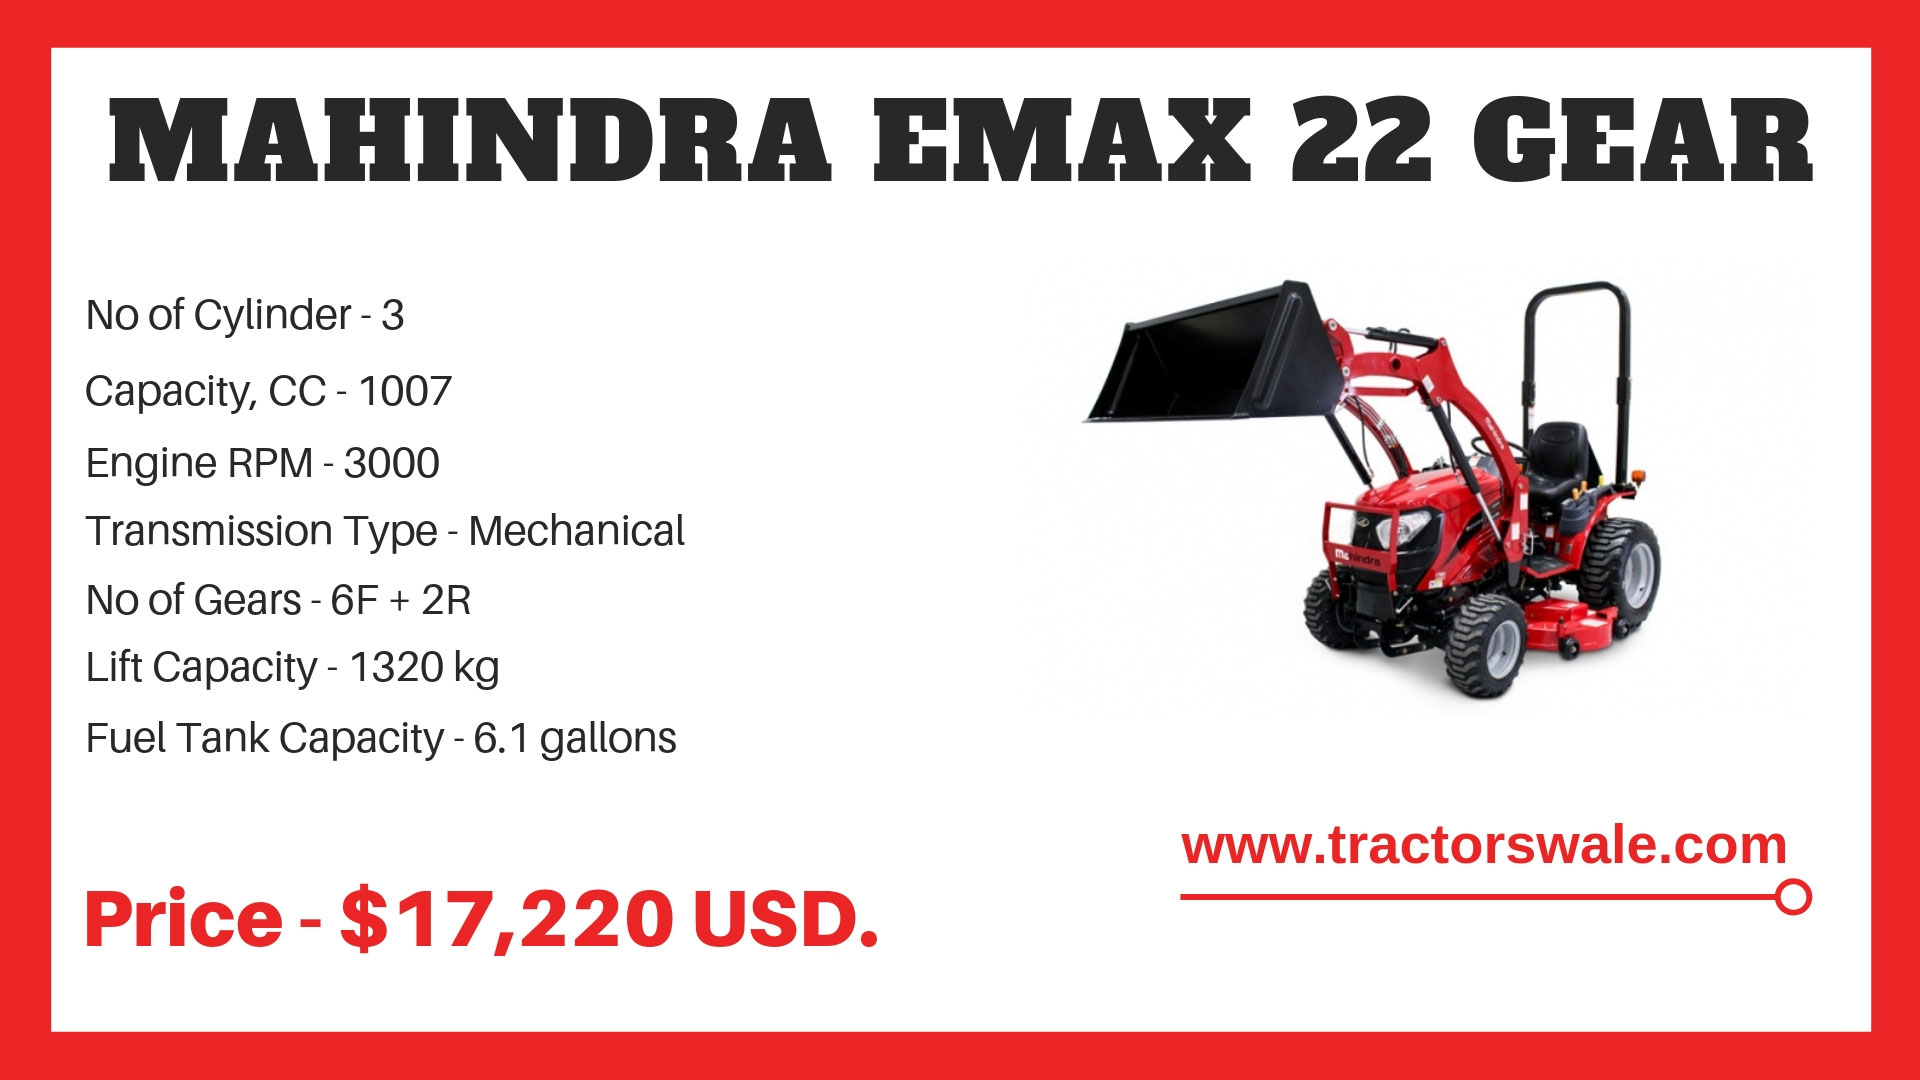 Mahindra-Emax-22-Gear-Mini-Tractor-Specifications